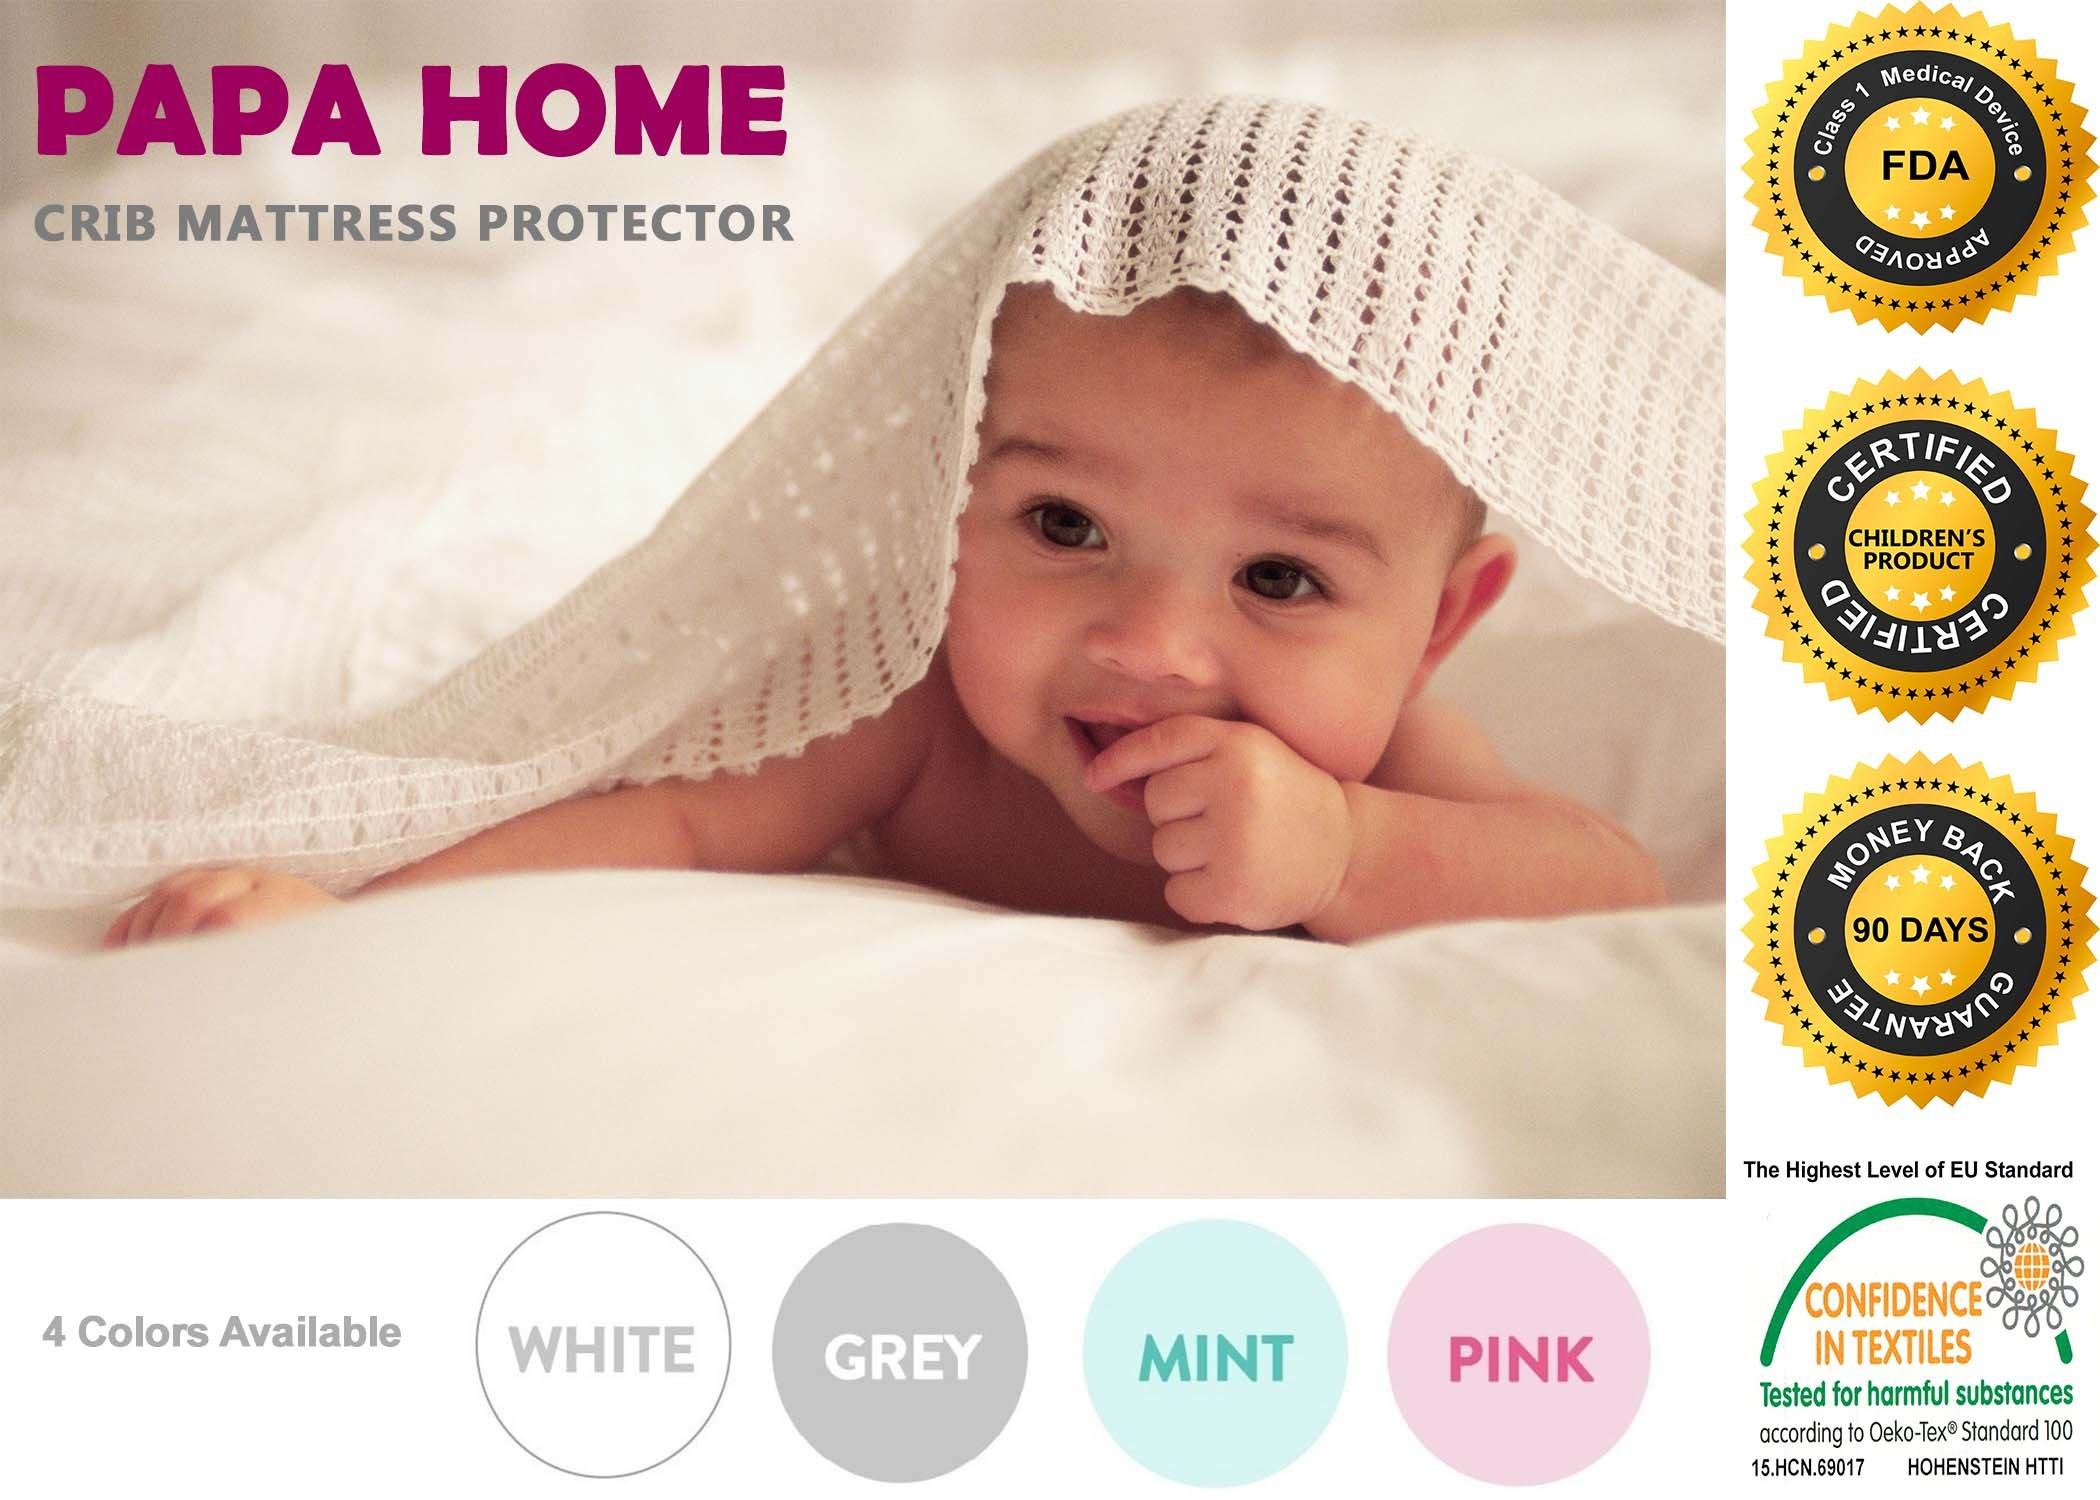 Papahome Premium Hypoallergenic Crib Mattress Protector - Lab Tested Waterproof - Fitted Cotton Terry Cover - Vinyl Free - 10 Year Warranty (Crib, White)